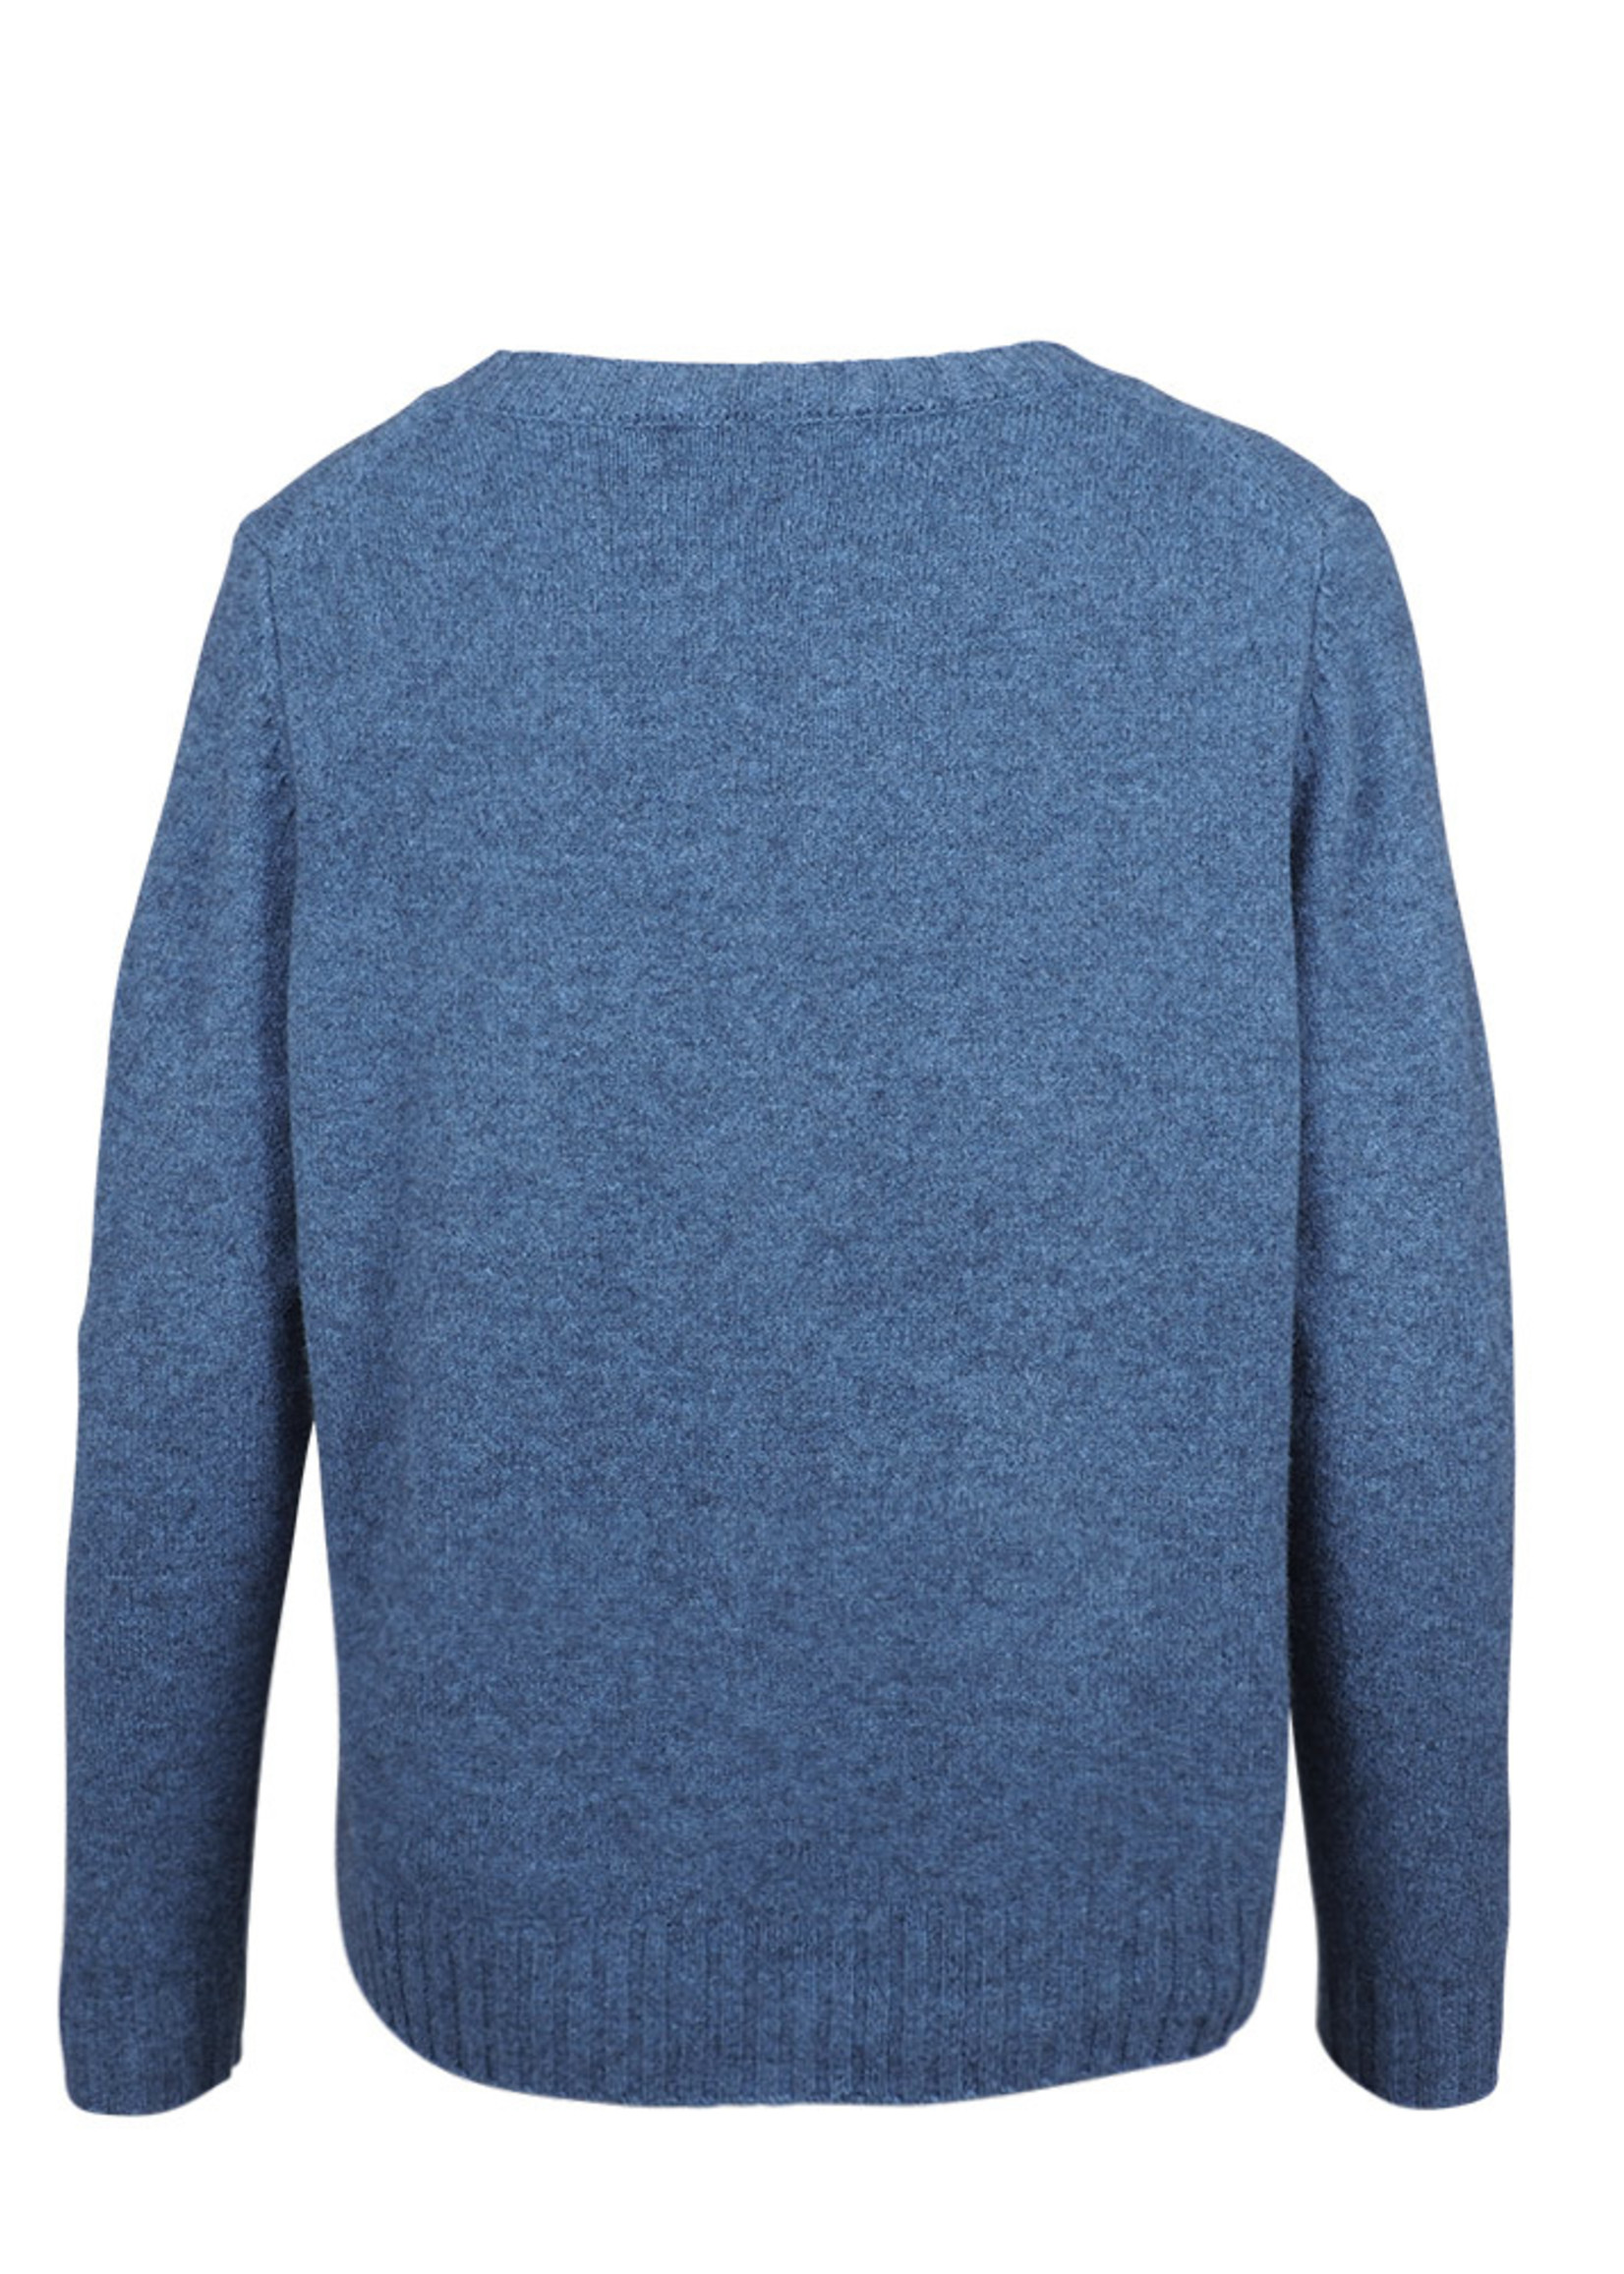 Mansted Mansted Yak Wool Crew Neck Sweater